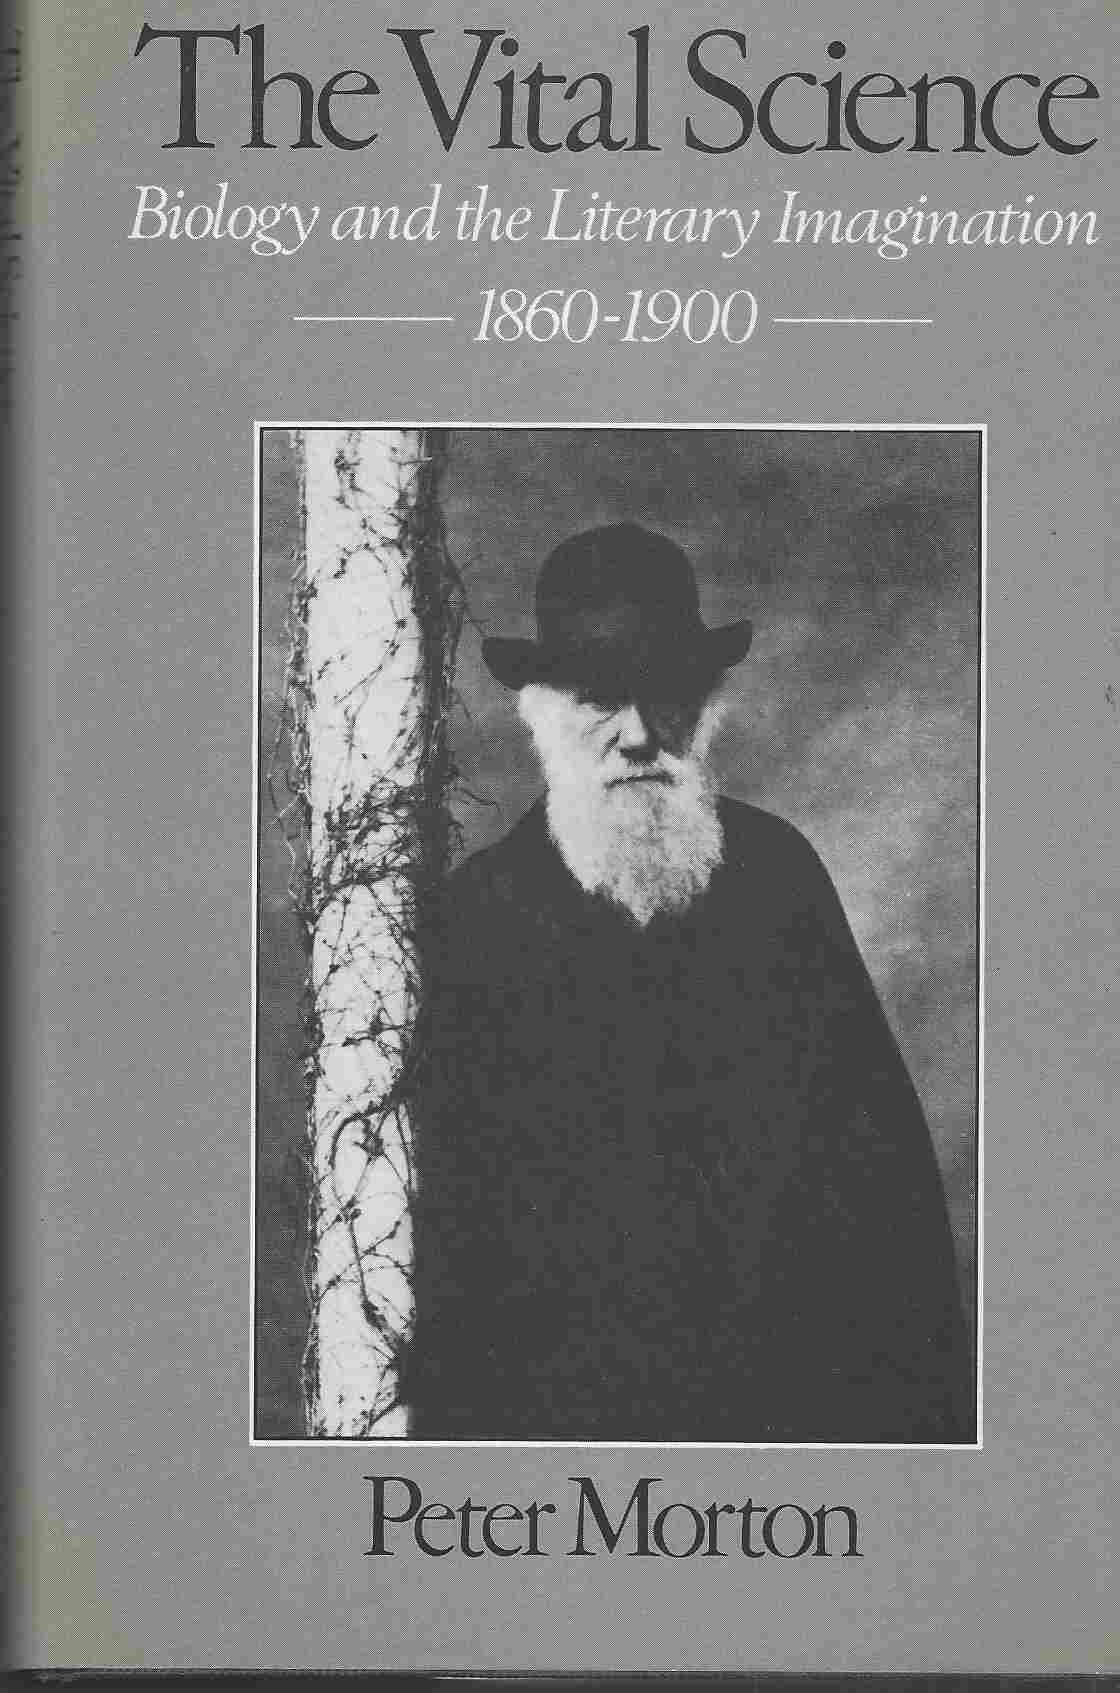 The Vital Science  Biology and the Literary Imagination, 1860-1900